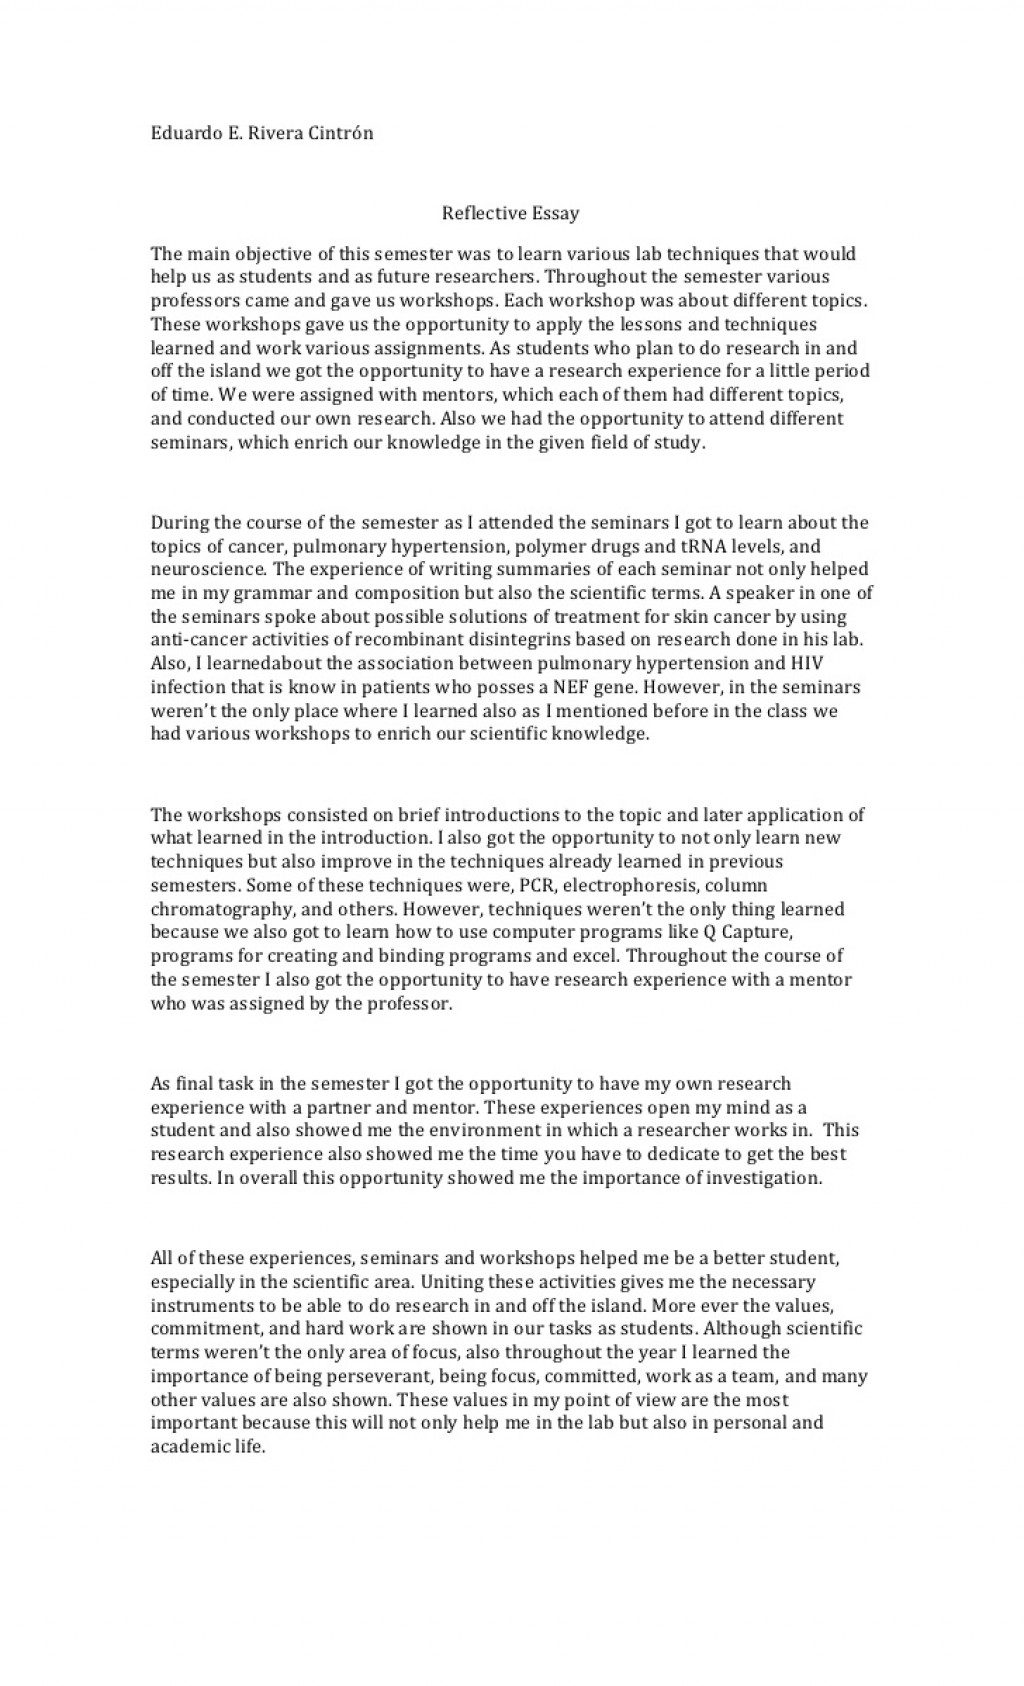 006 Reflective Essay Example Course Unforgettable Examples About Life Pdf High School Students Apa Large